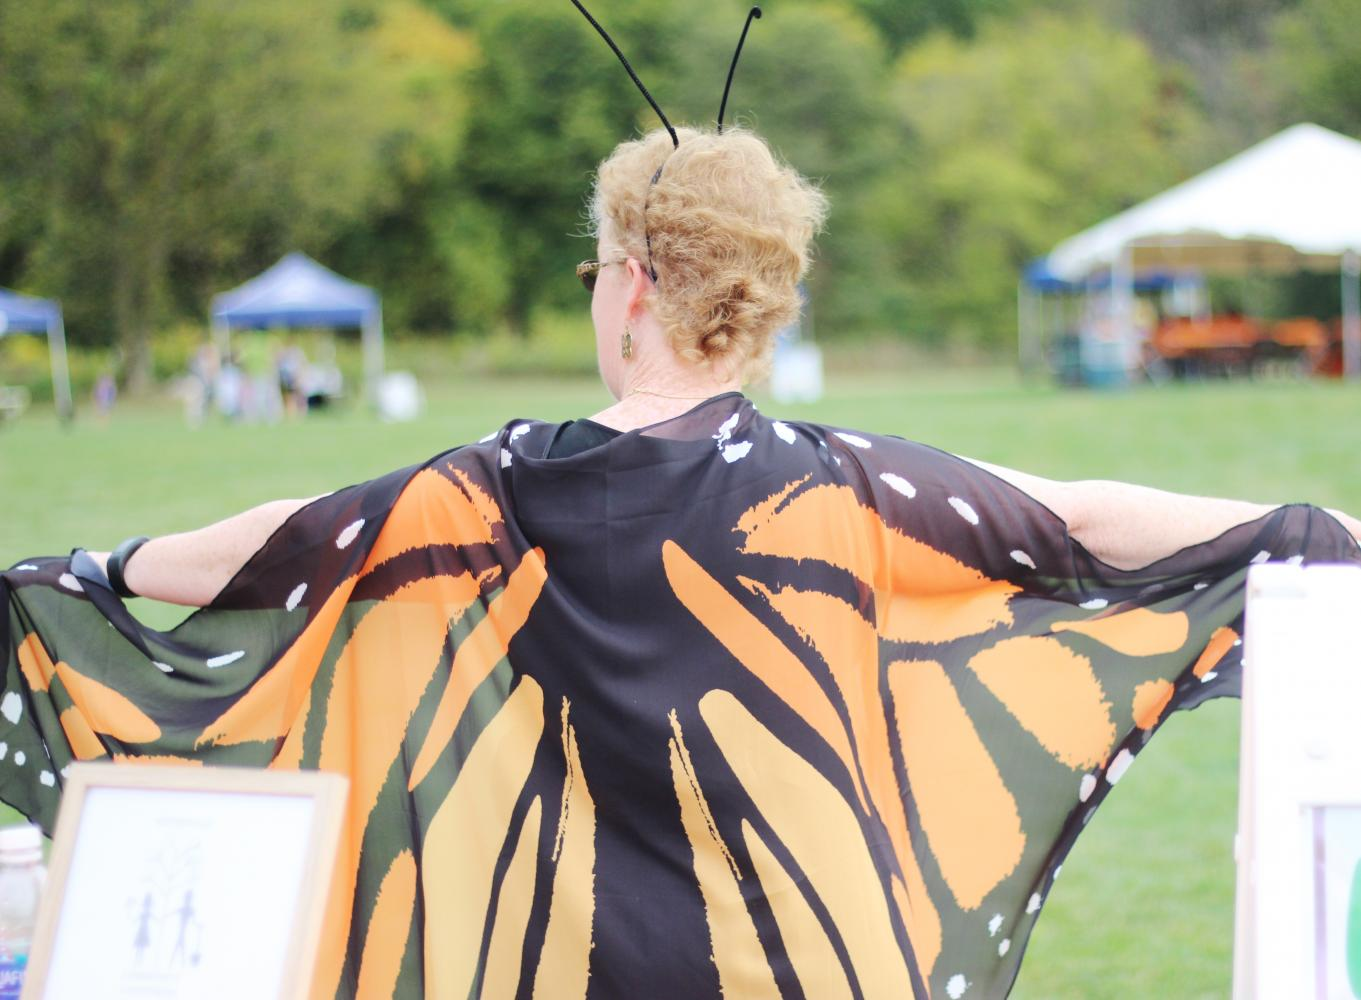 A volunteer greets children and families as they enter the Monarch Festival.